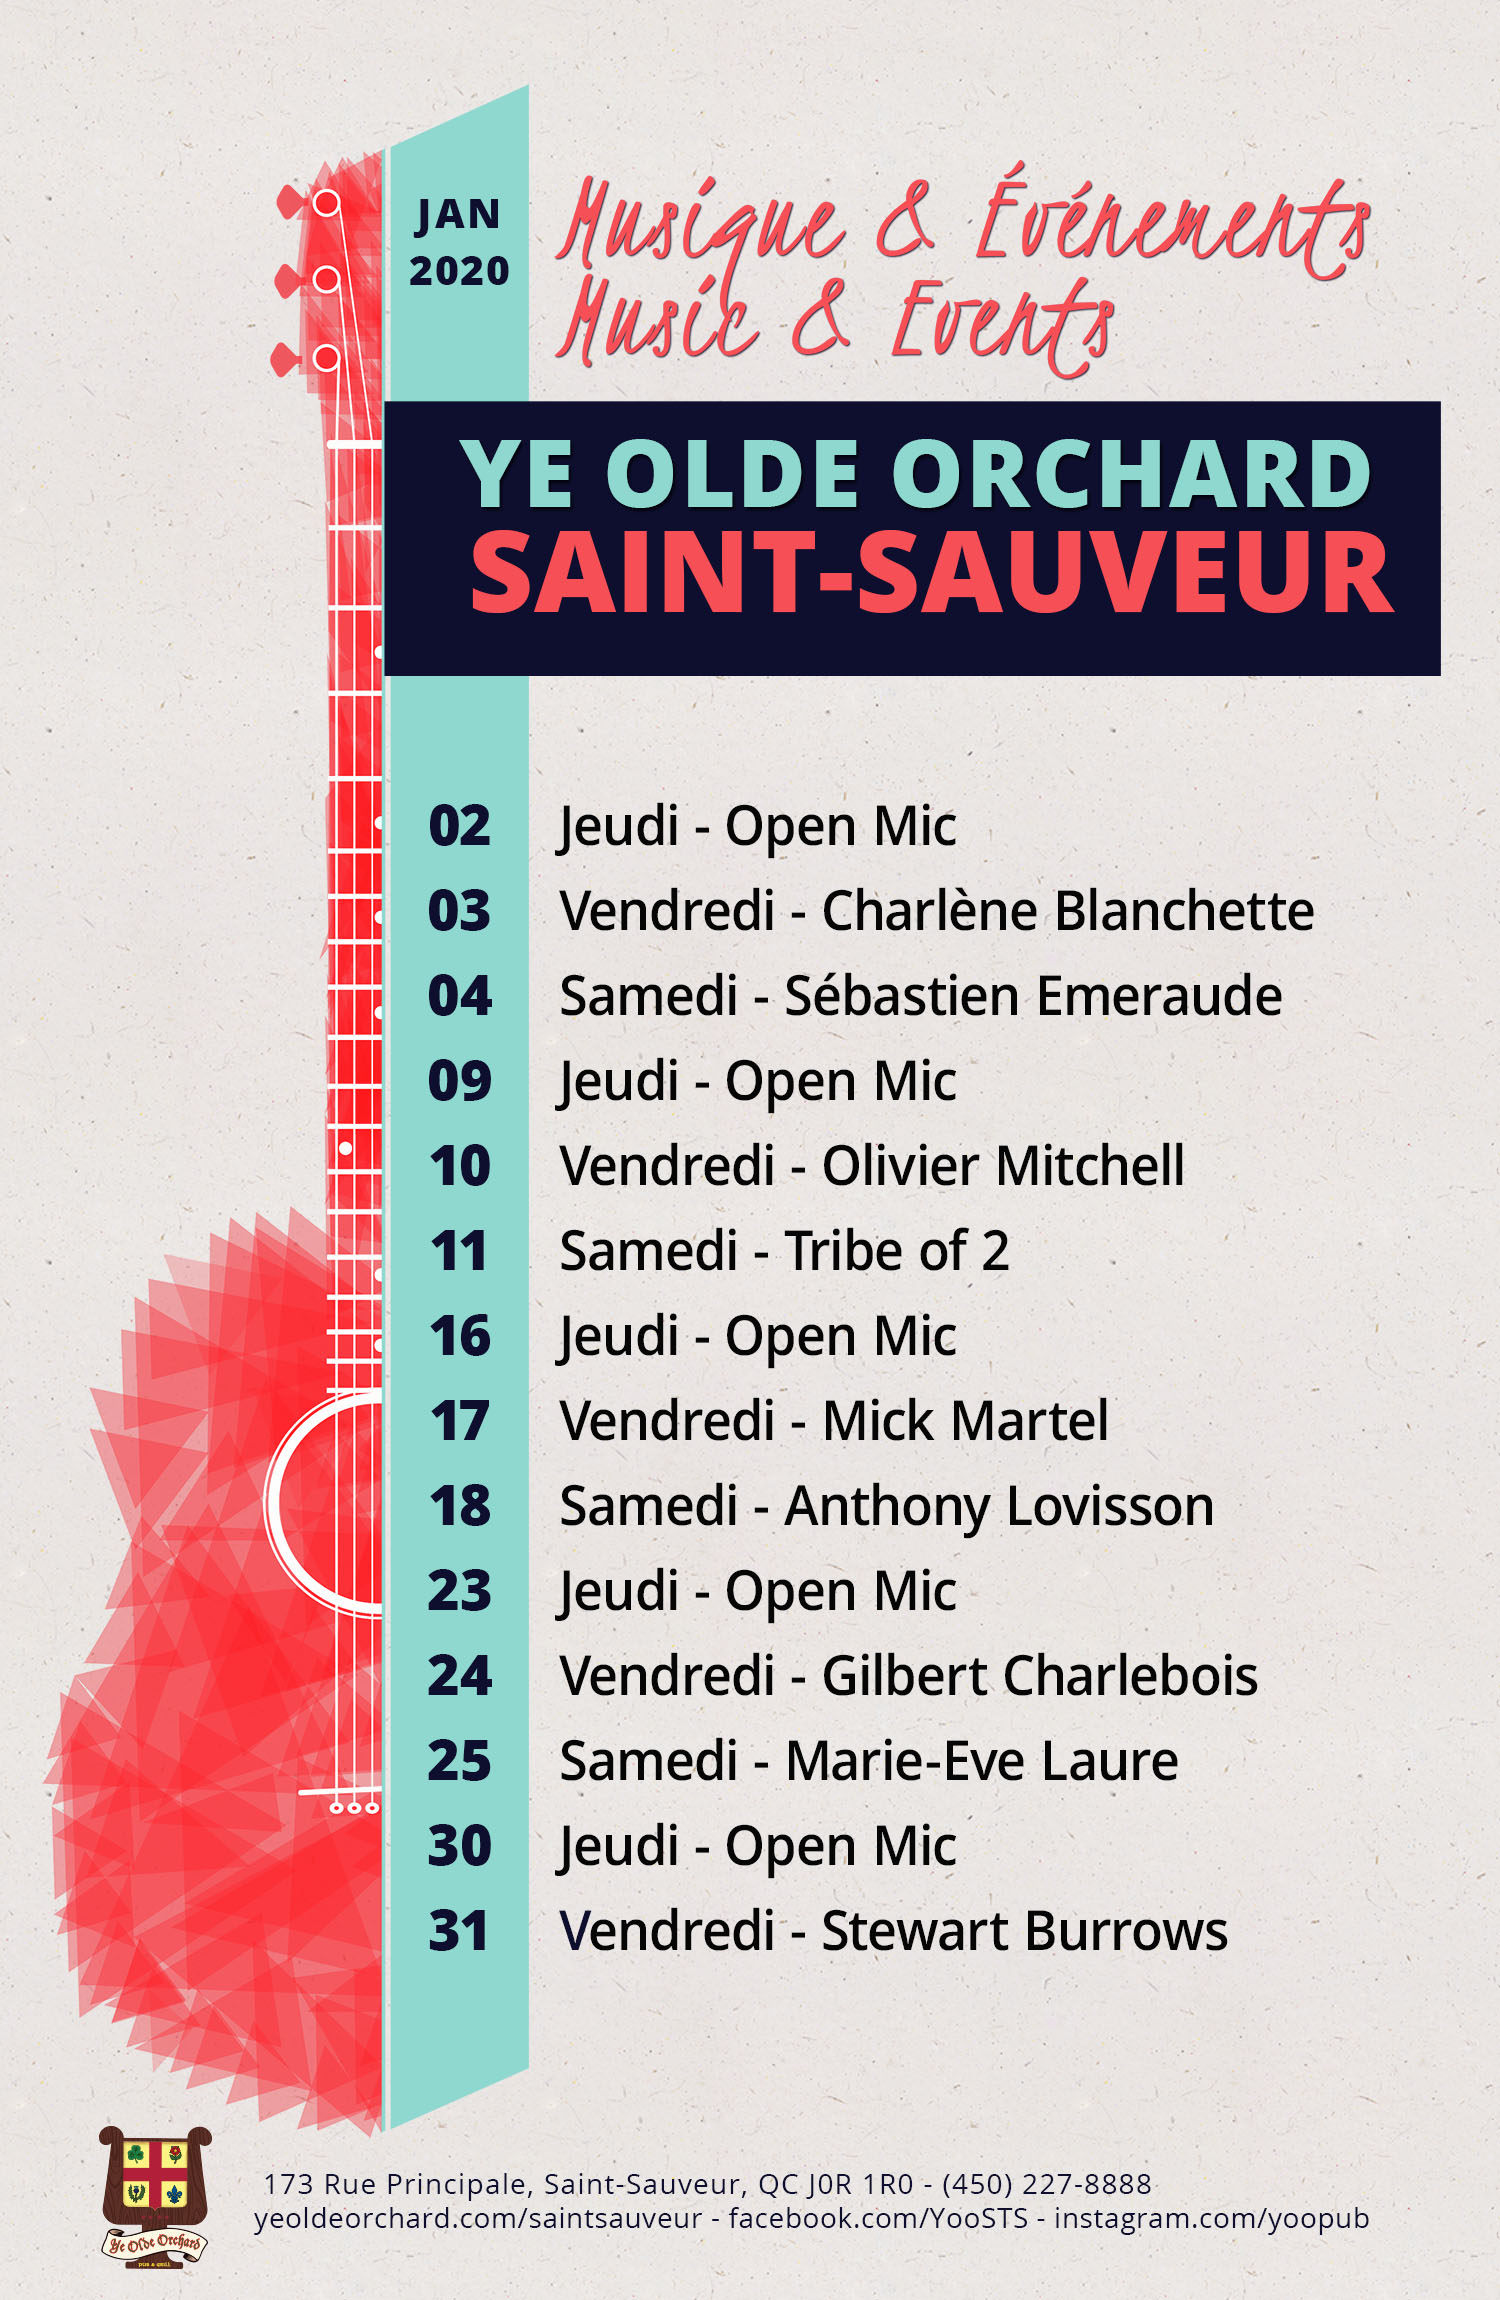 ye-olde-orchard-pub-music-and-events-calendar-SaintSauveur-WEB-JAN